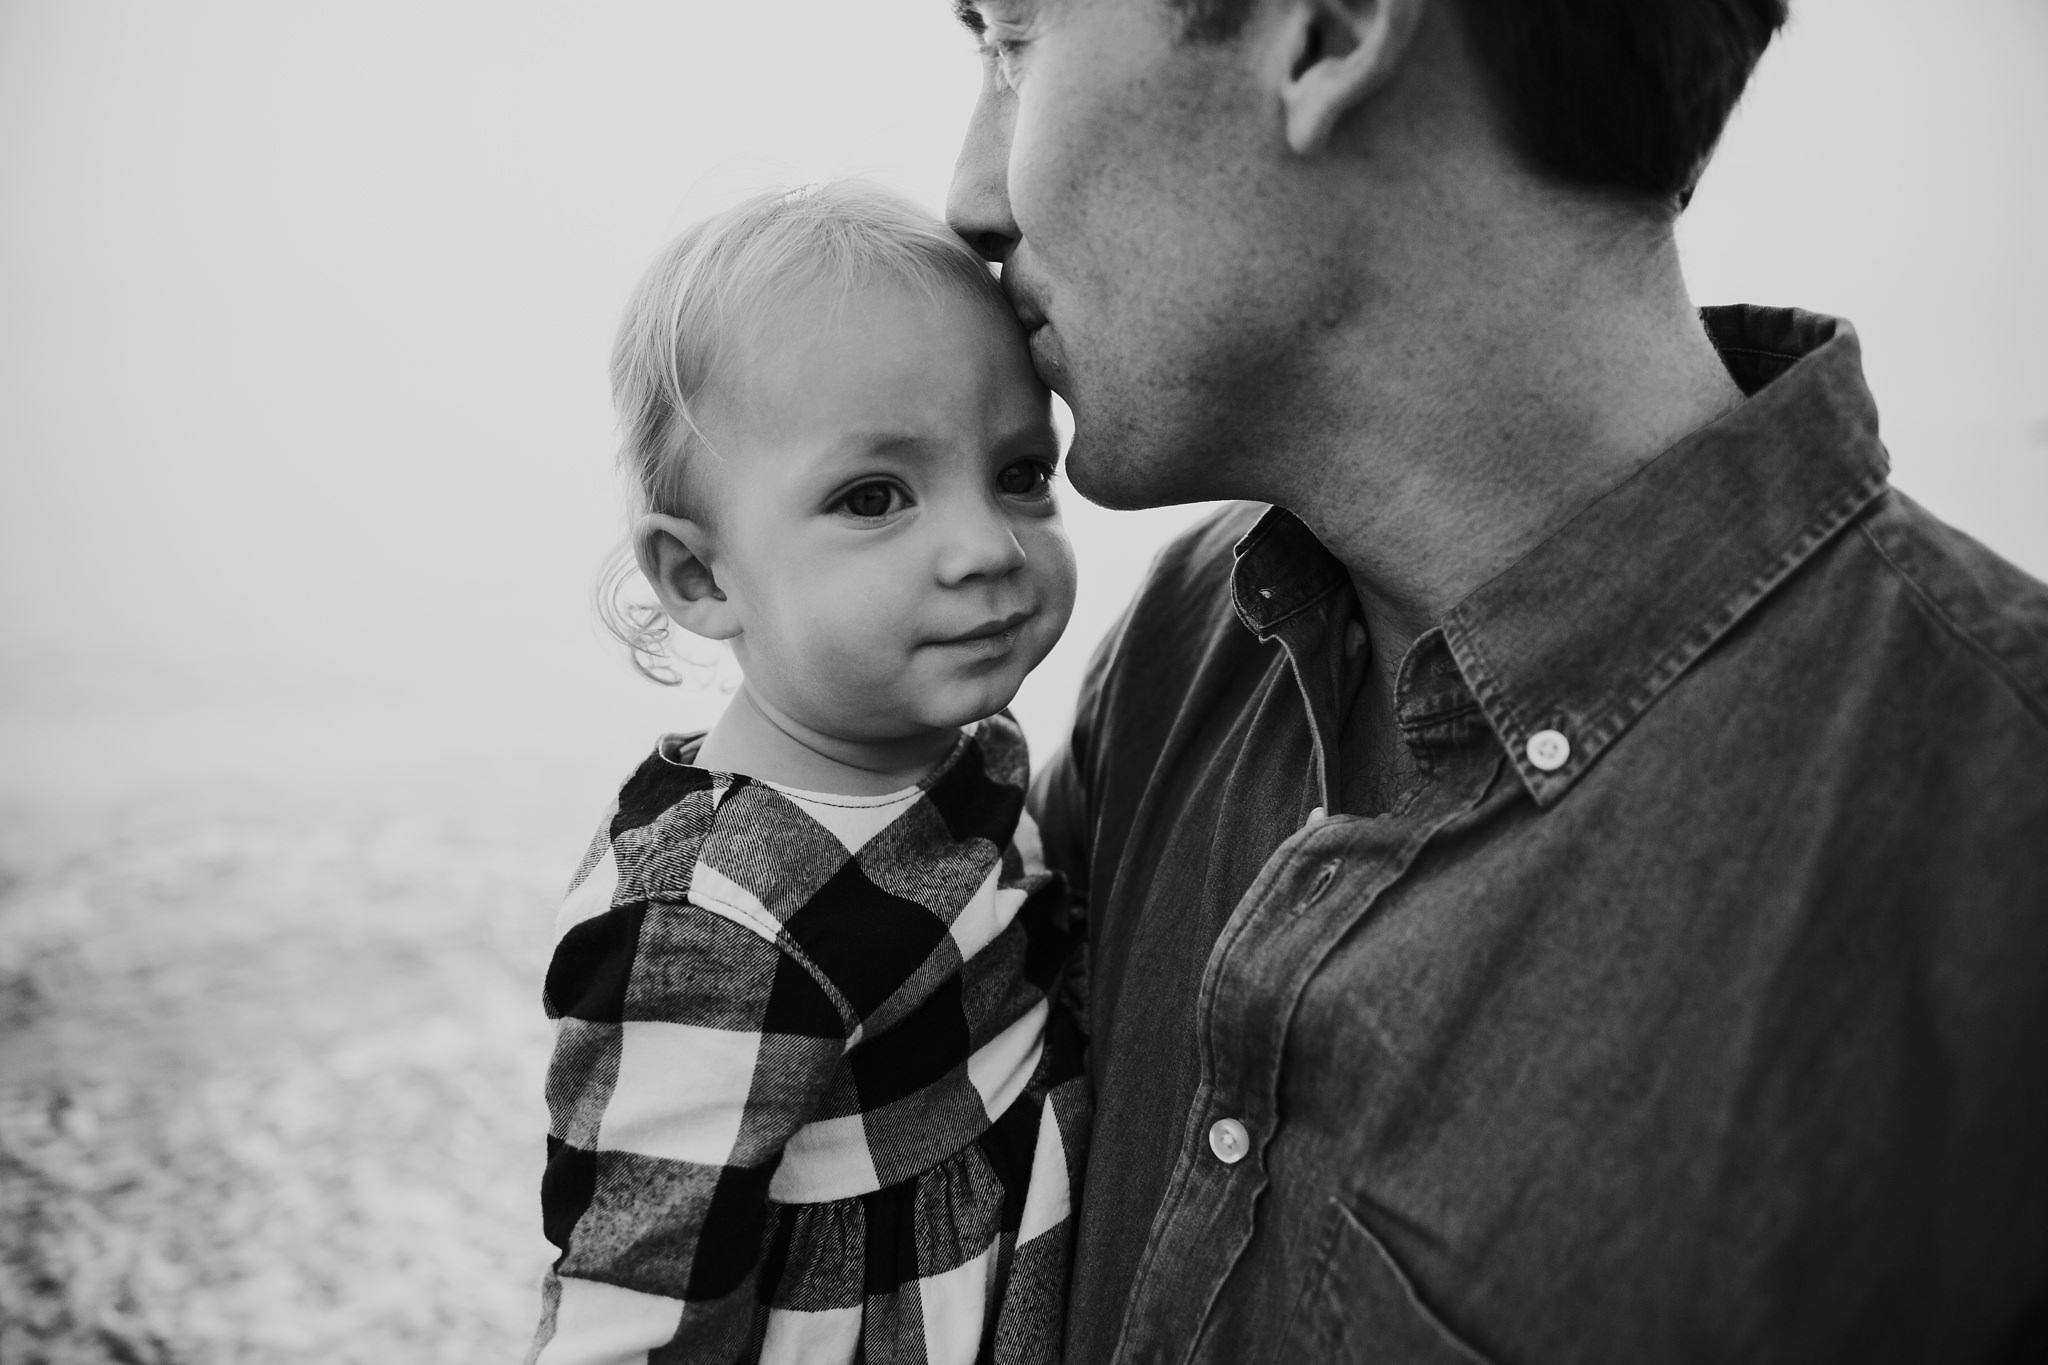 Fun Family Session at Deception Pass | Whidbey Island Family Photographer